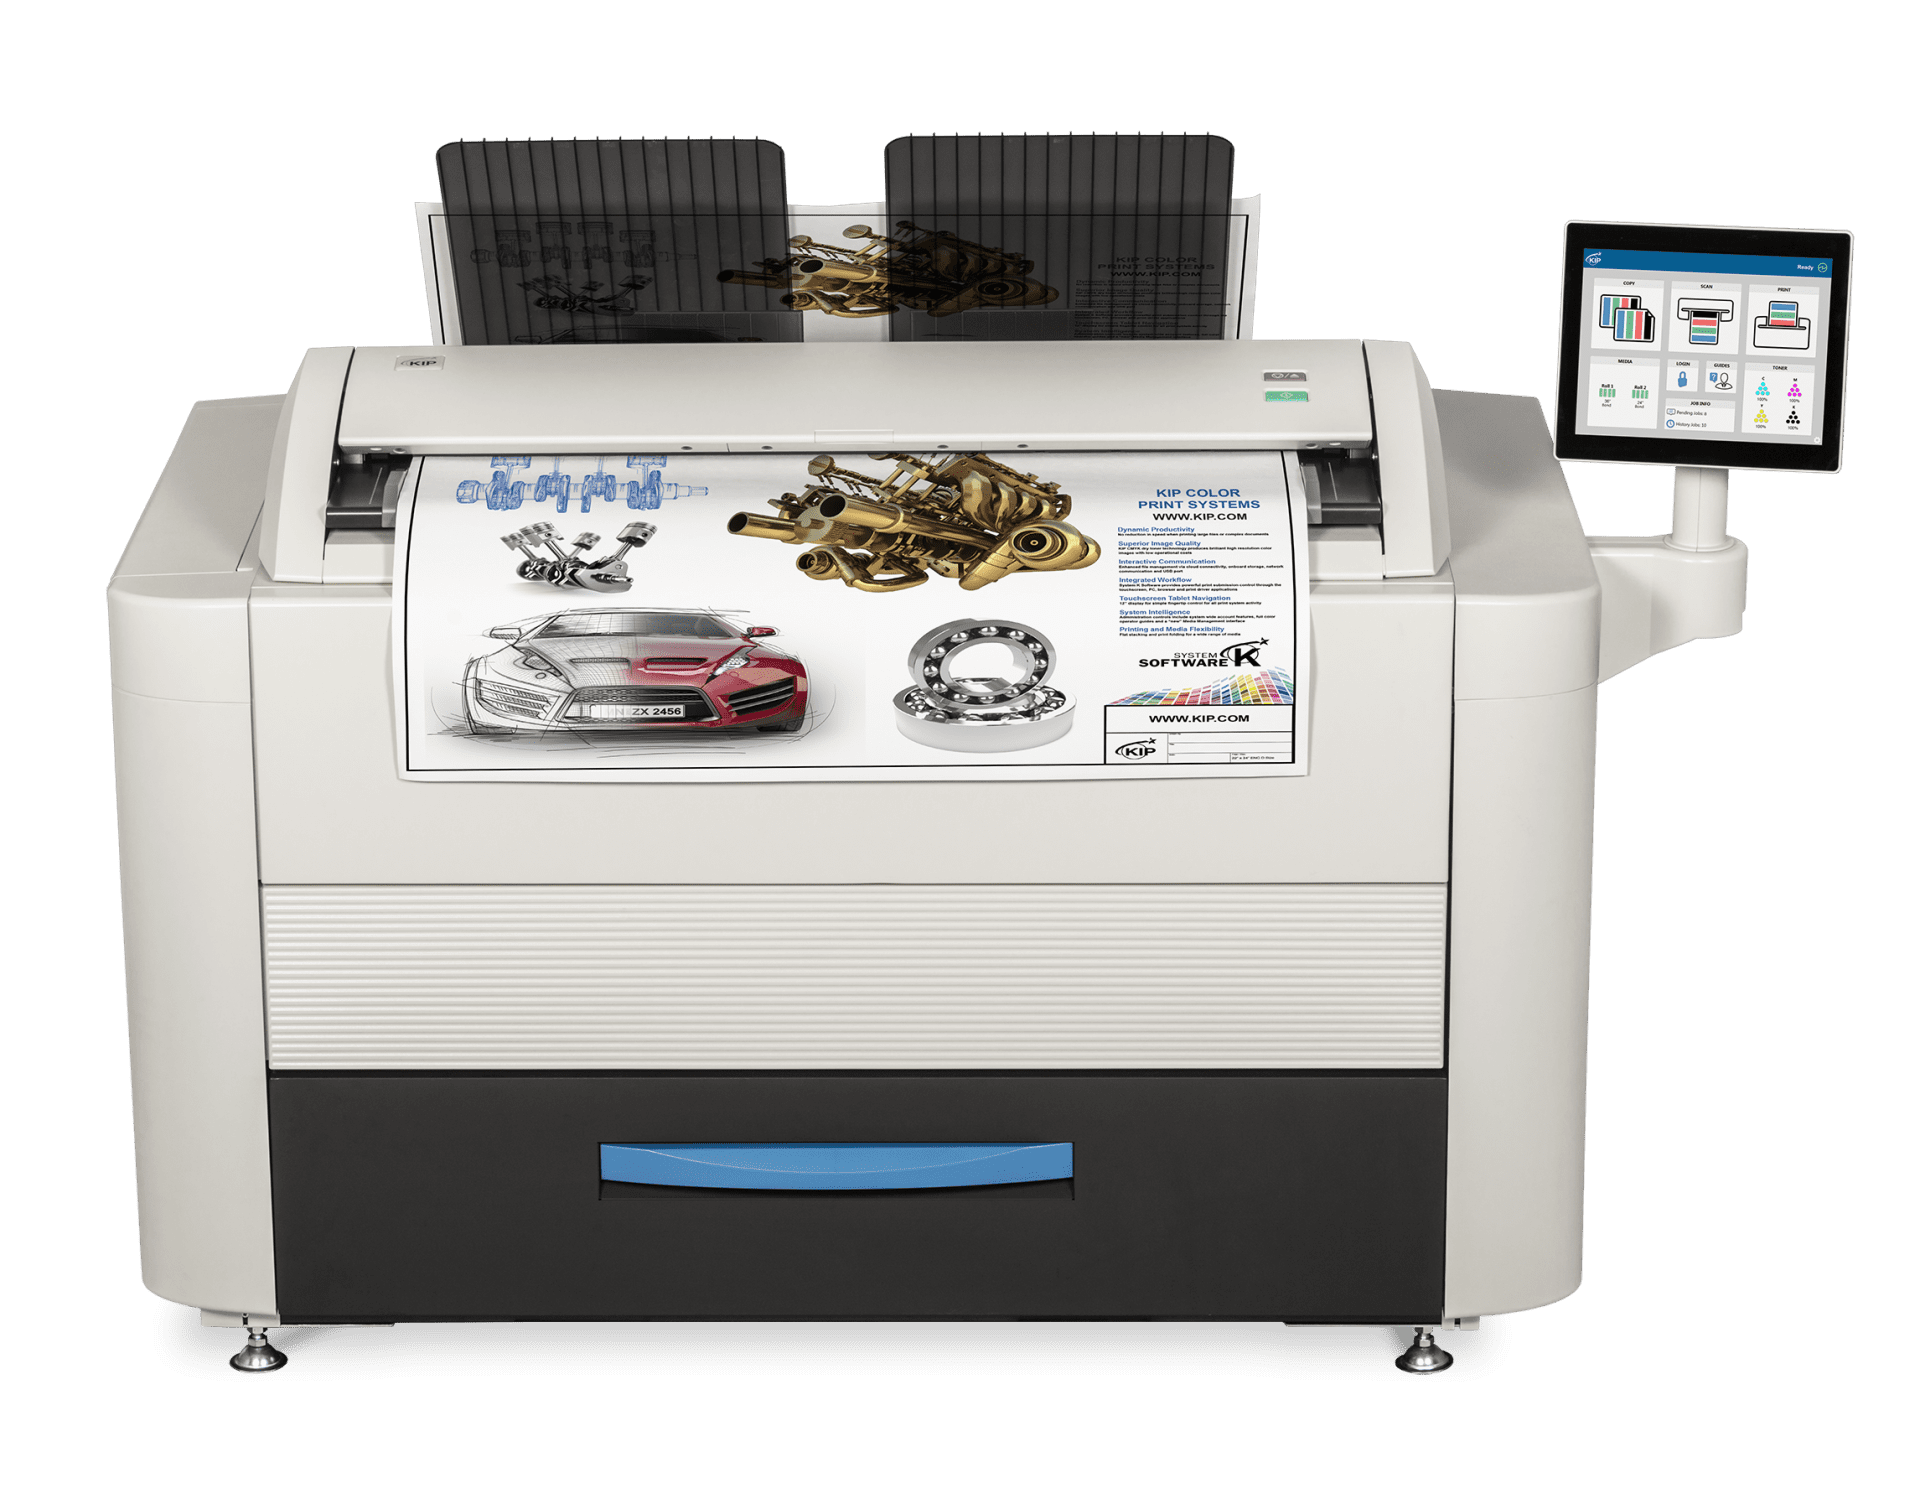 Kip 600 Series - wide format